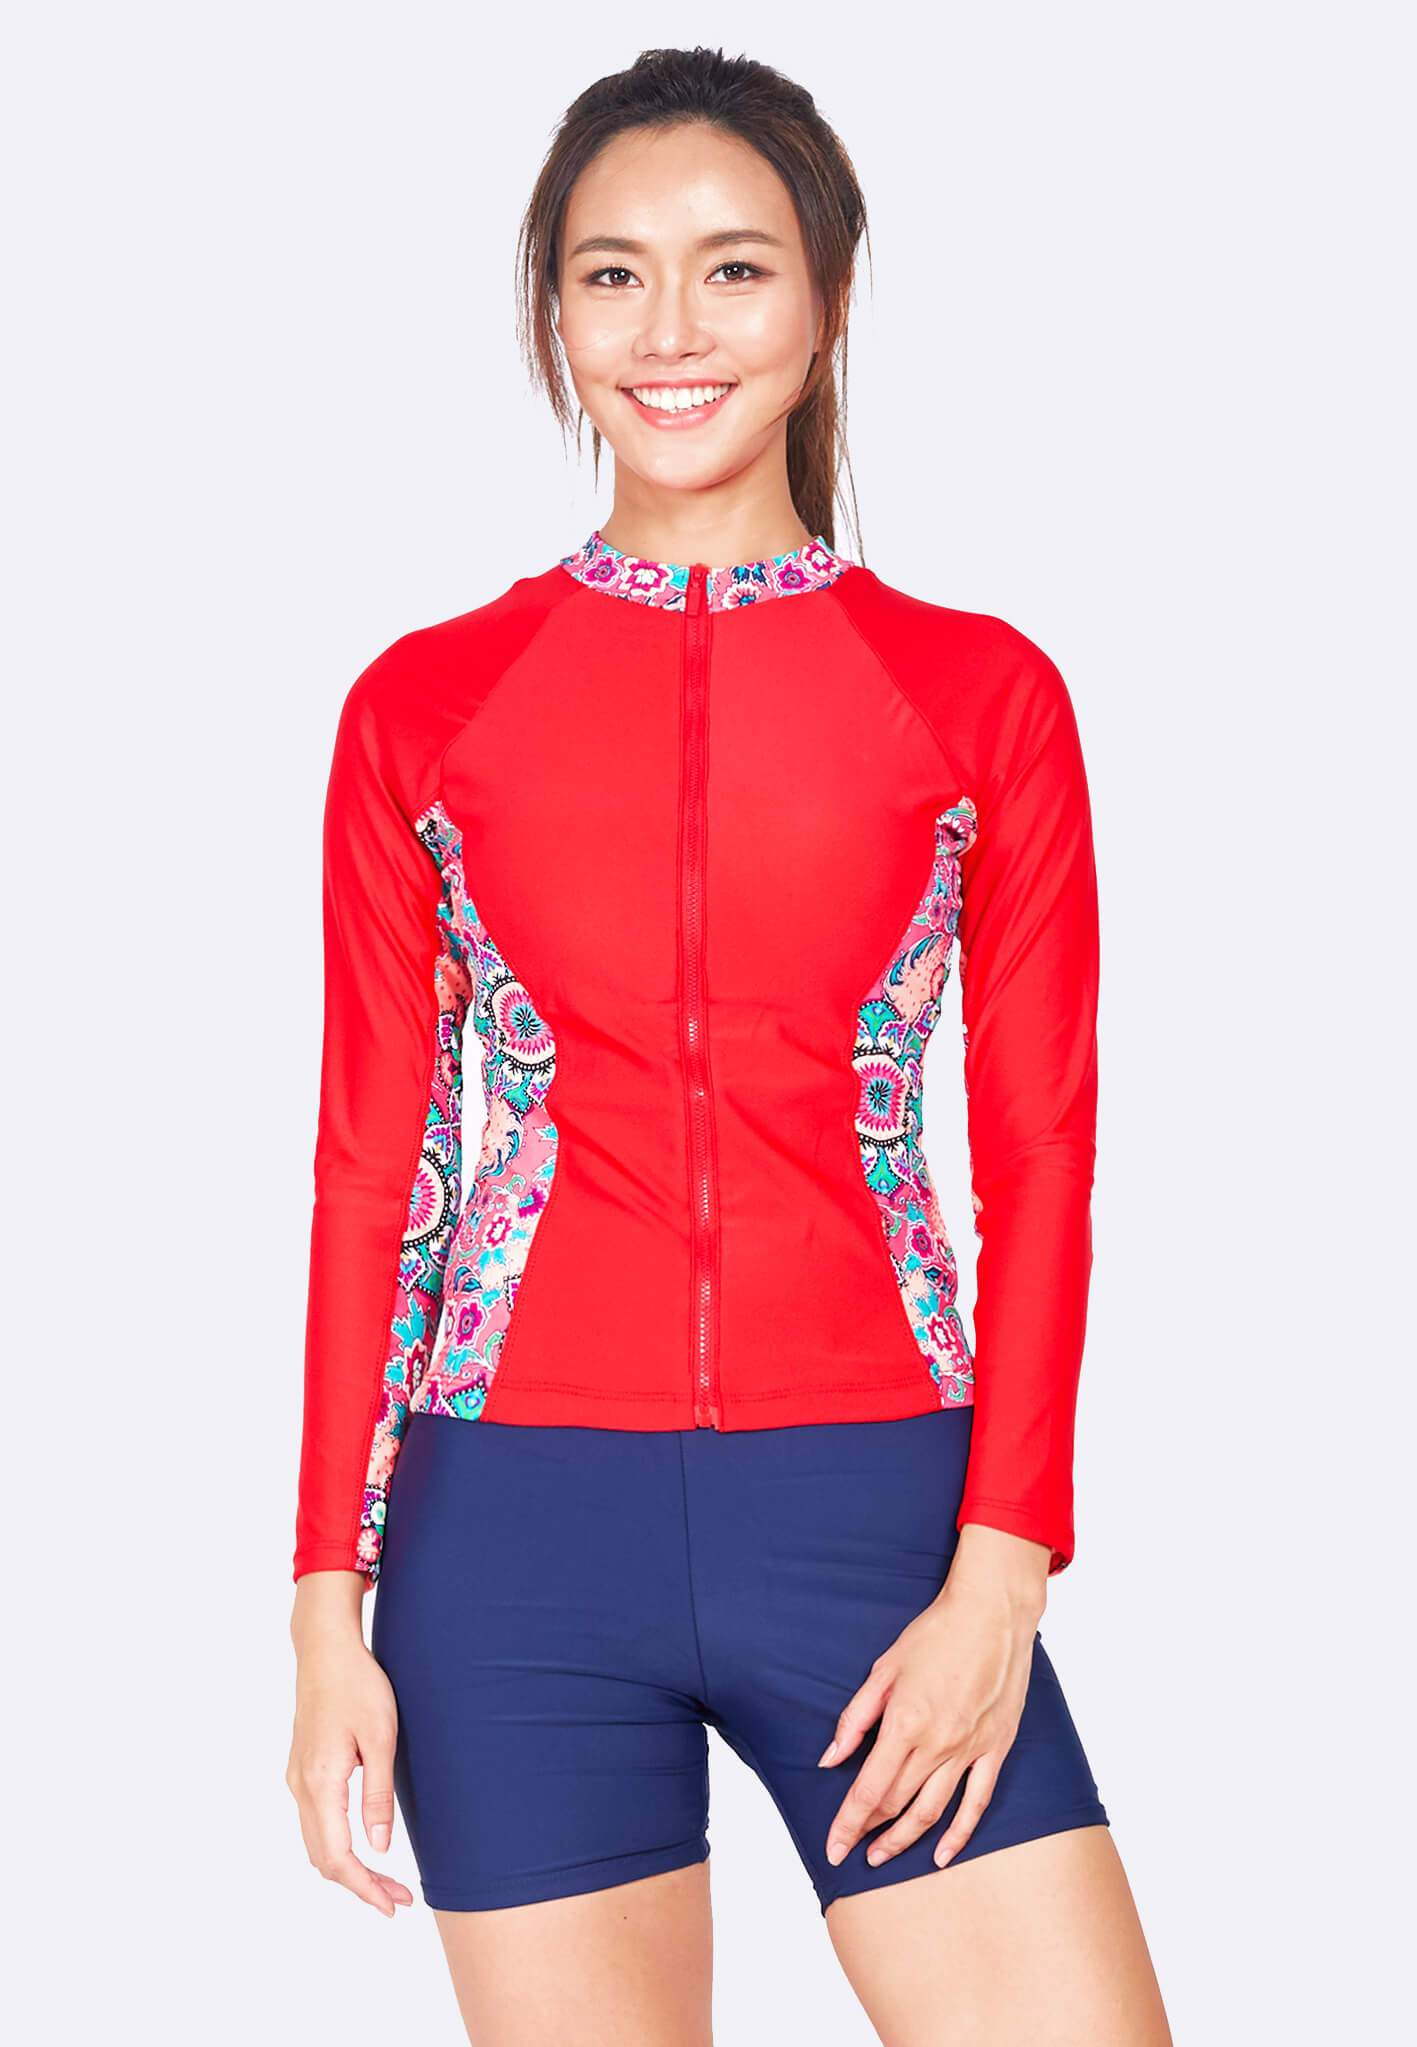 FUNFIT Colourblock Zip Front Rashguard in Red/ Mandala Print (S - 3XL)